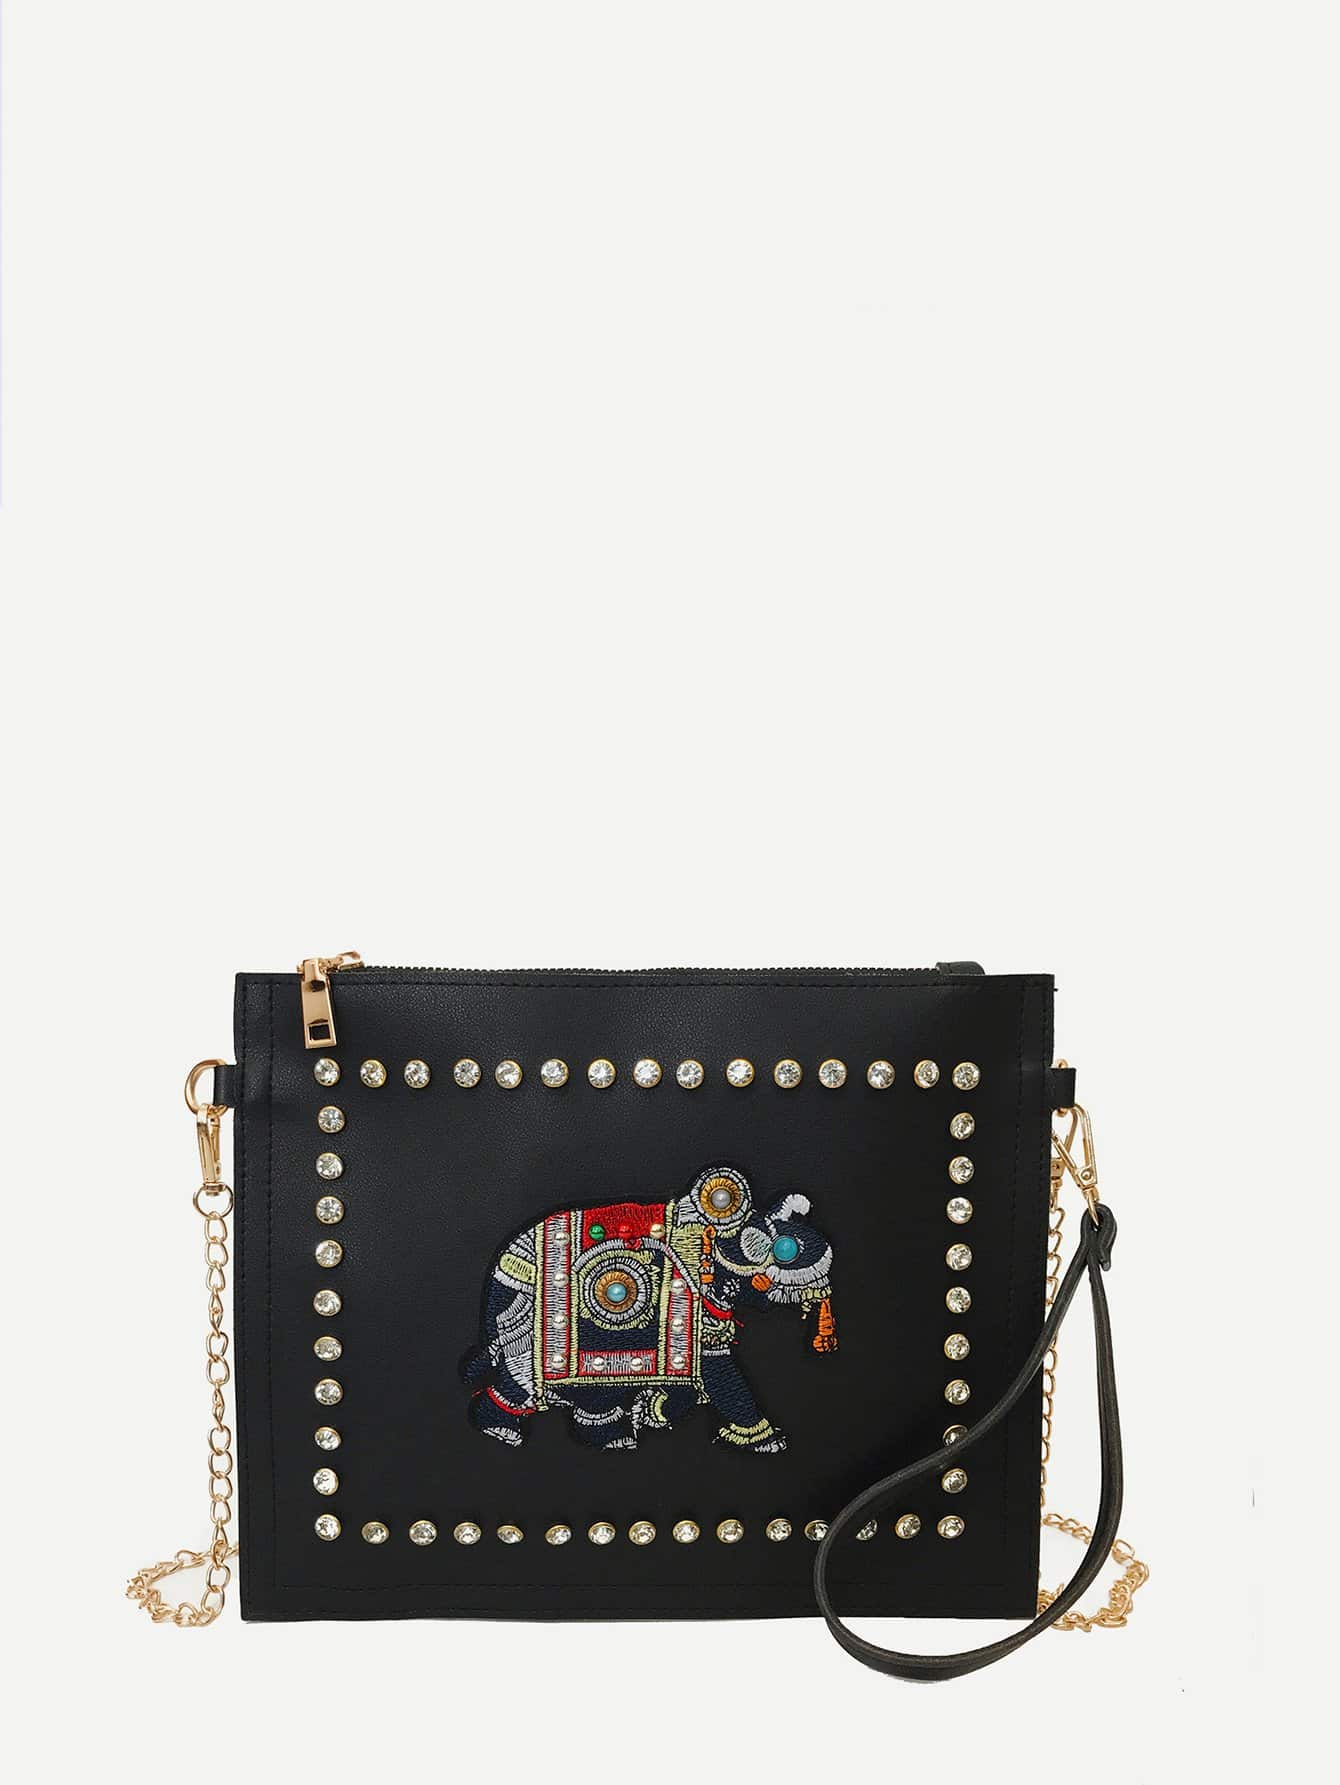 Elephant Embroidery Rhinestone Chain Bag